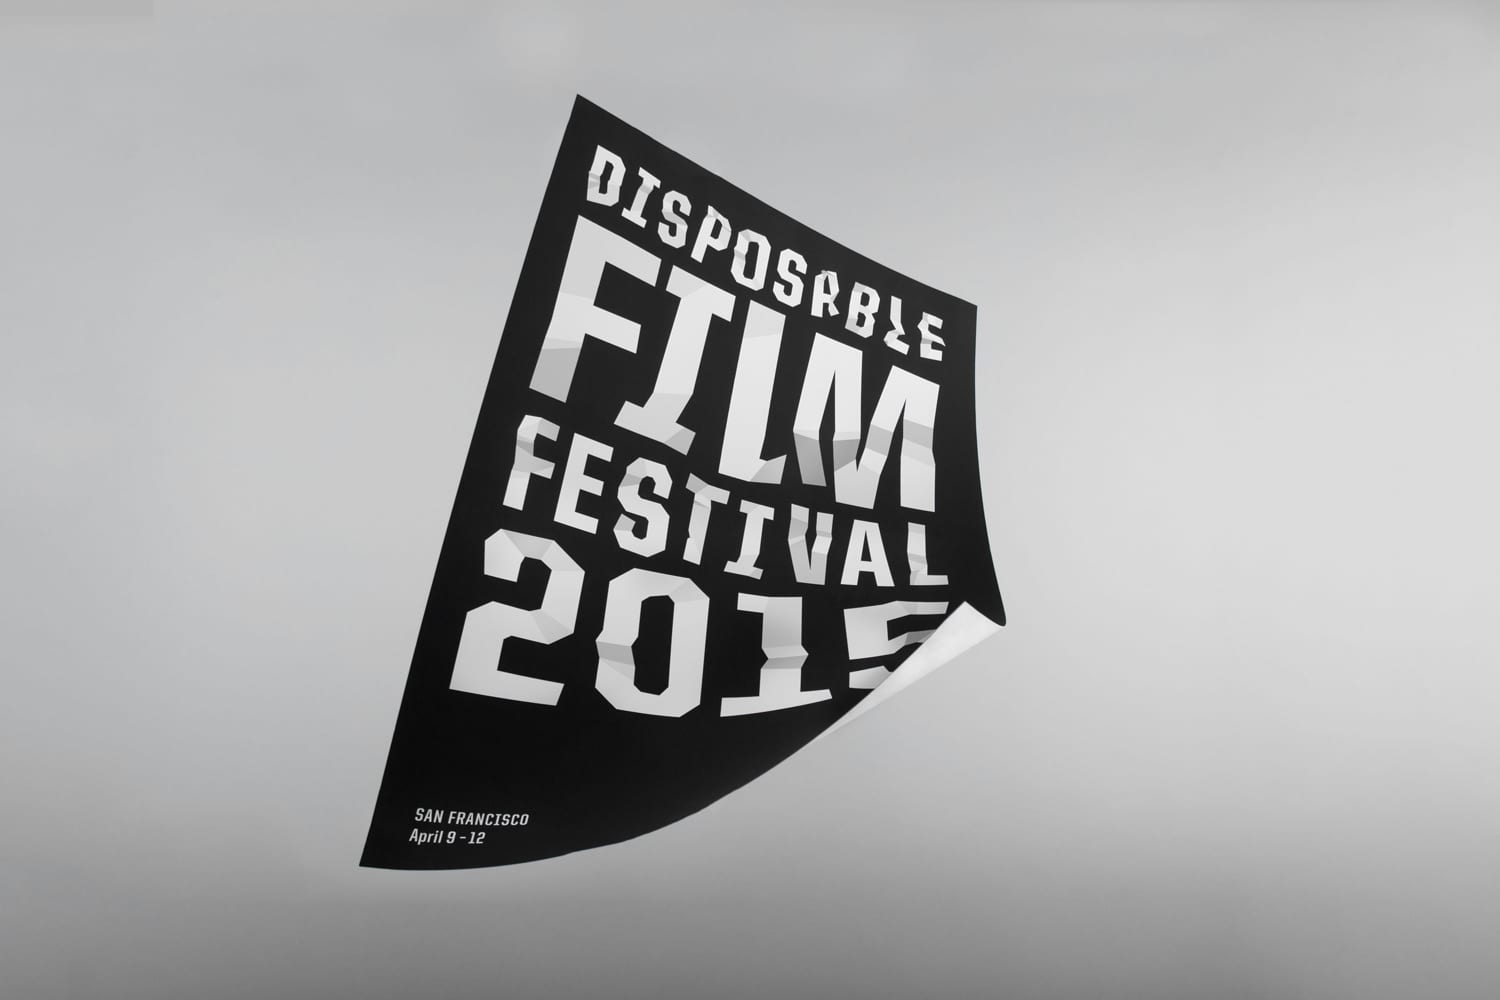 Disposable Film Festival Identity